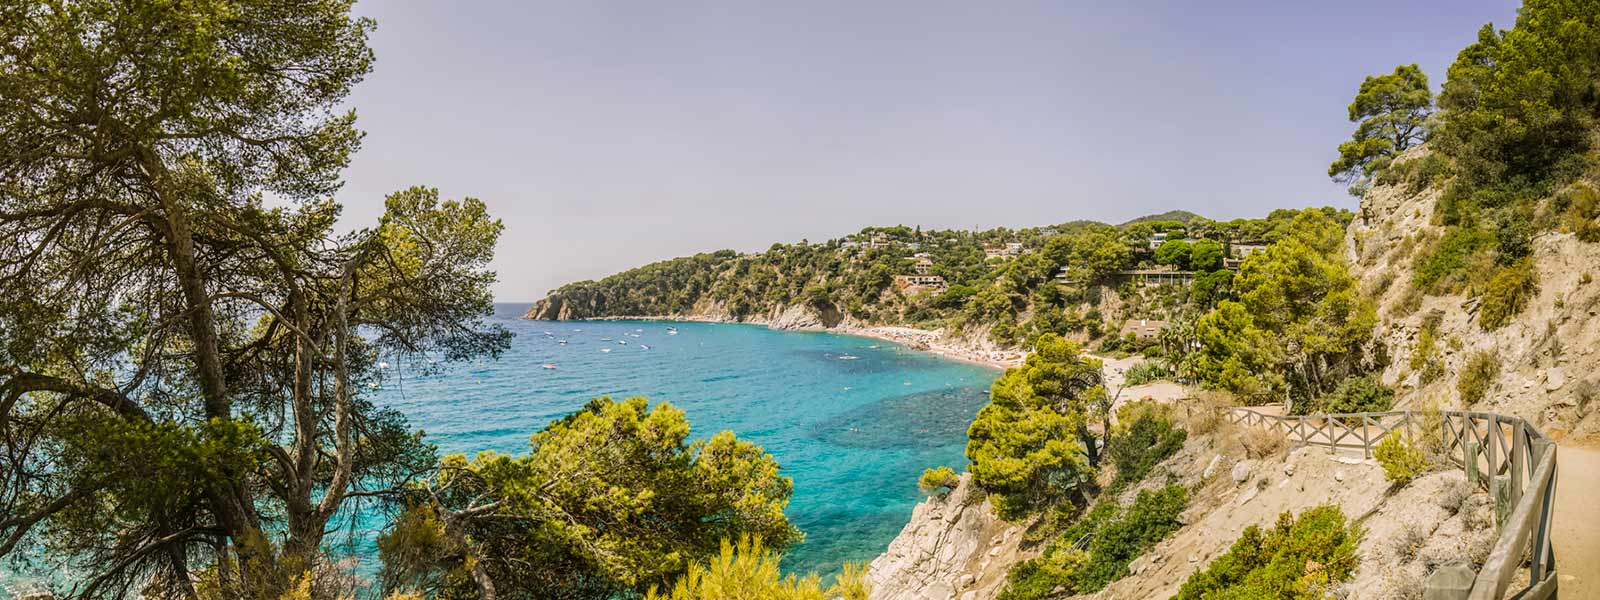 Camping Costa Brava in Spain | Camping in Tossa de Mar in Girona